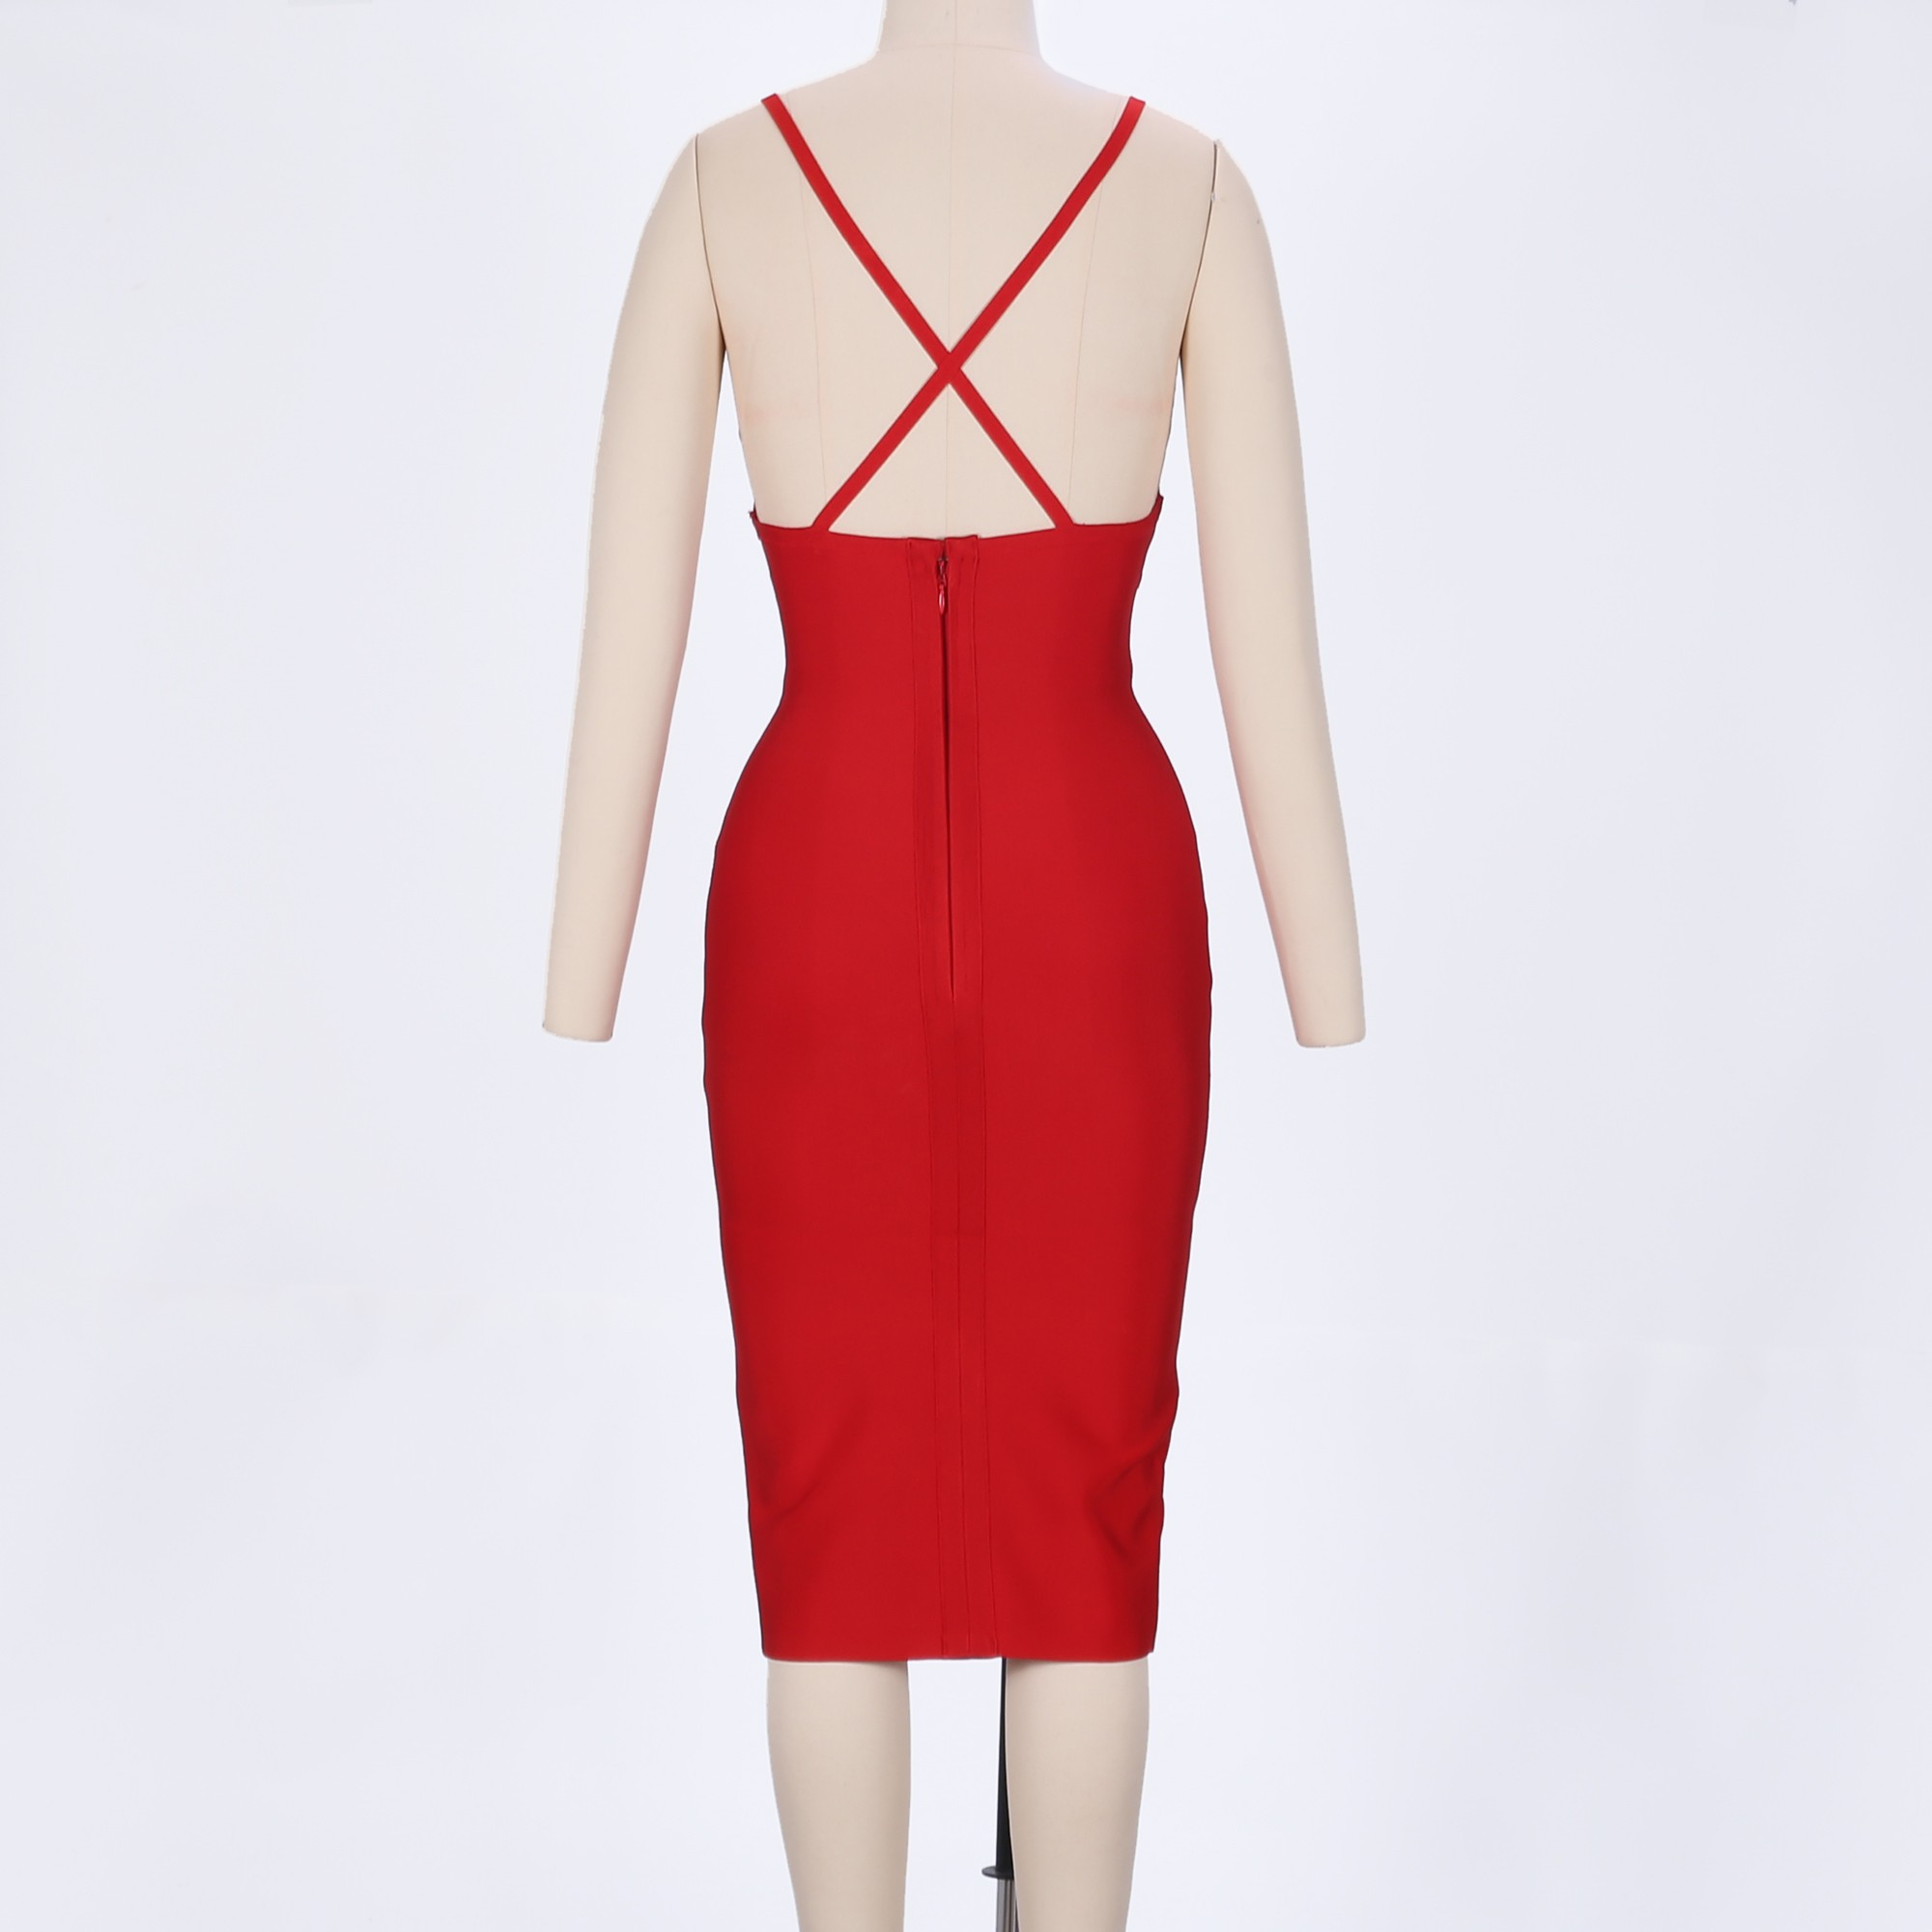 V neck Sleeveless Over Knee Open Back Red Evening Party Bandage Dress HX211-Red